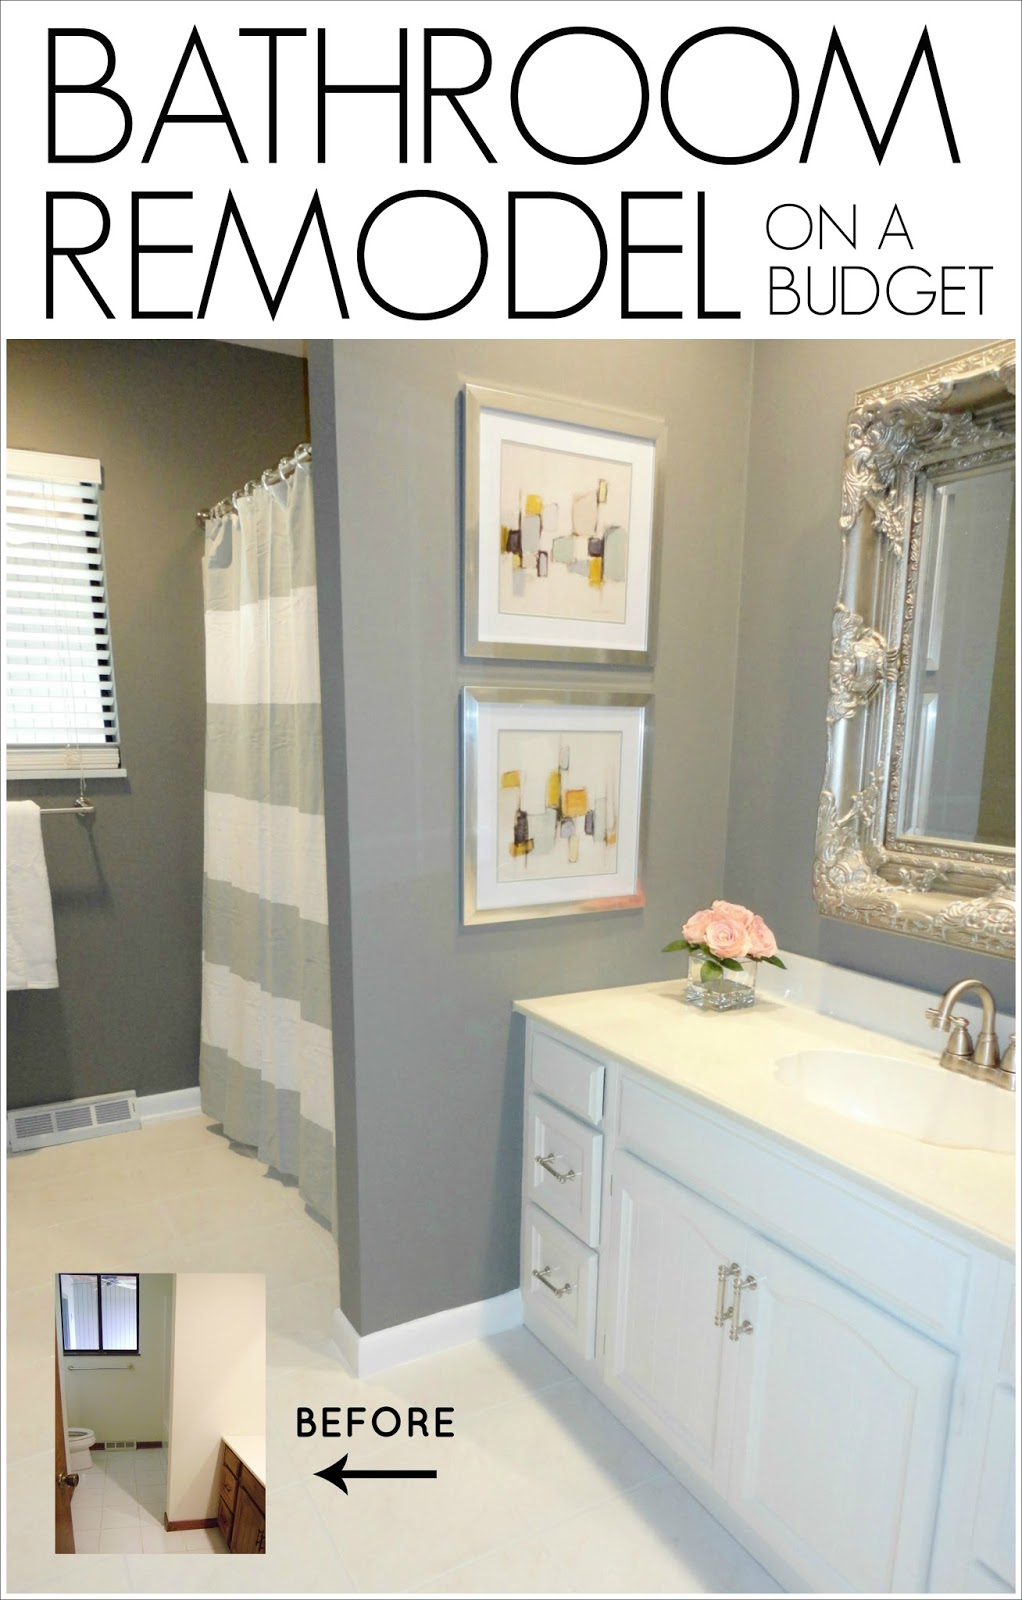 Livelovediy diy bathroom remodel on a budget for Easy bathroom remodel